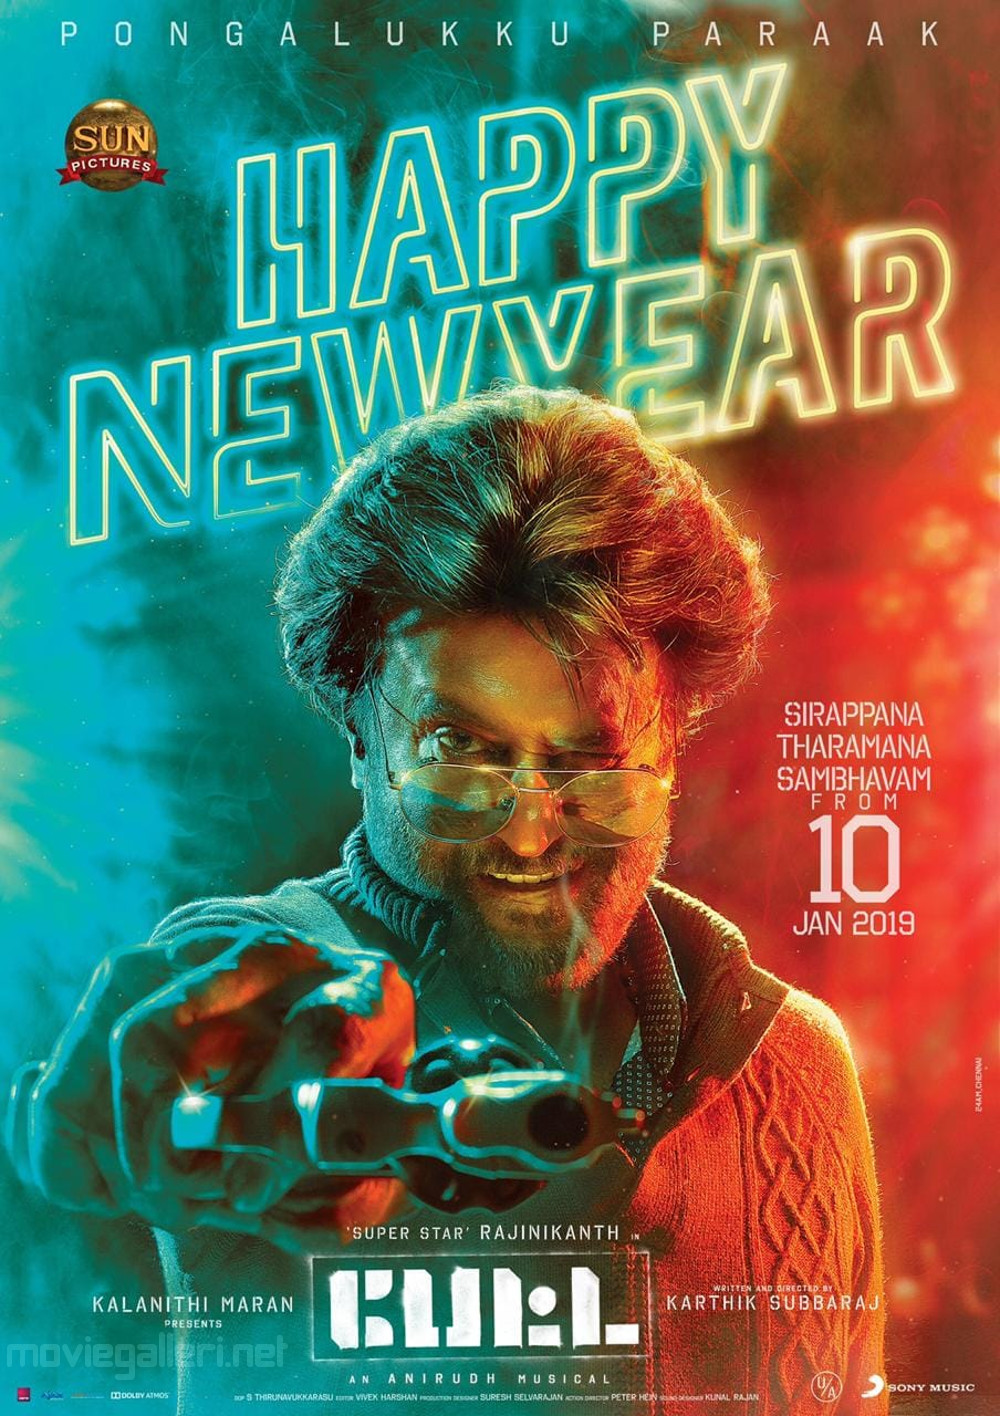 Superstar Rajinikanth Petta Movie New Year 2019 Wishes Poster HD. Directed by Karthik Subbaraj, Music by Anirudh.